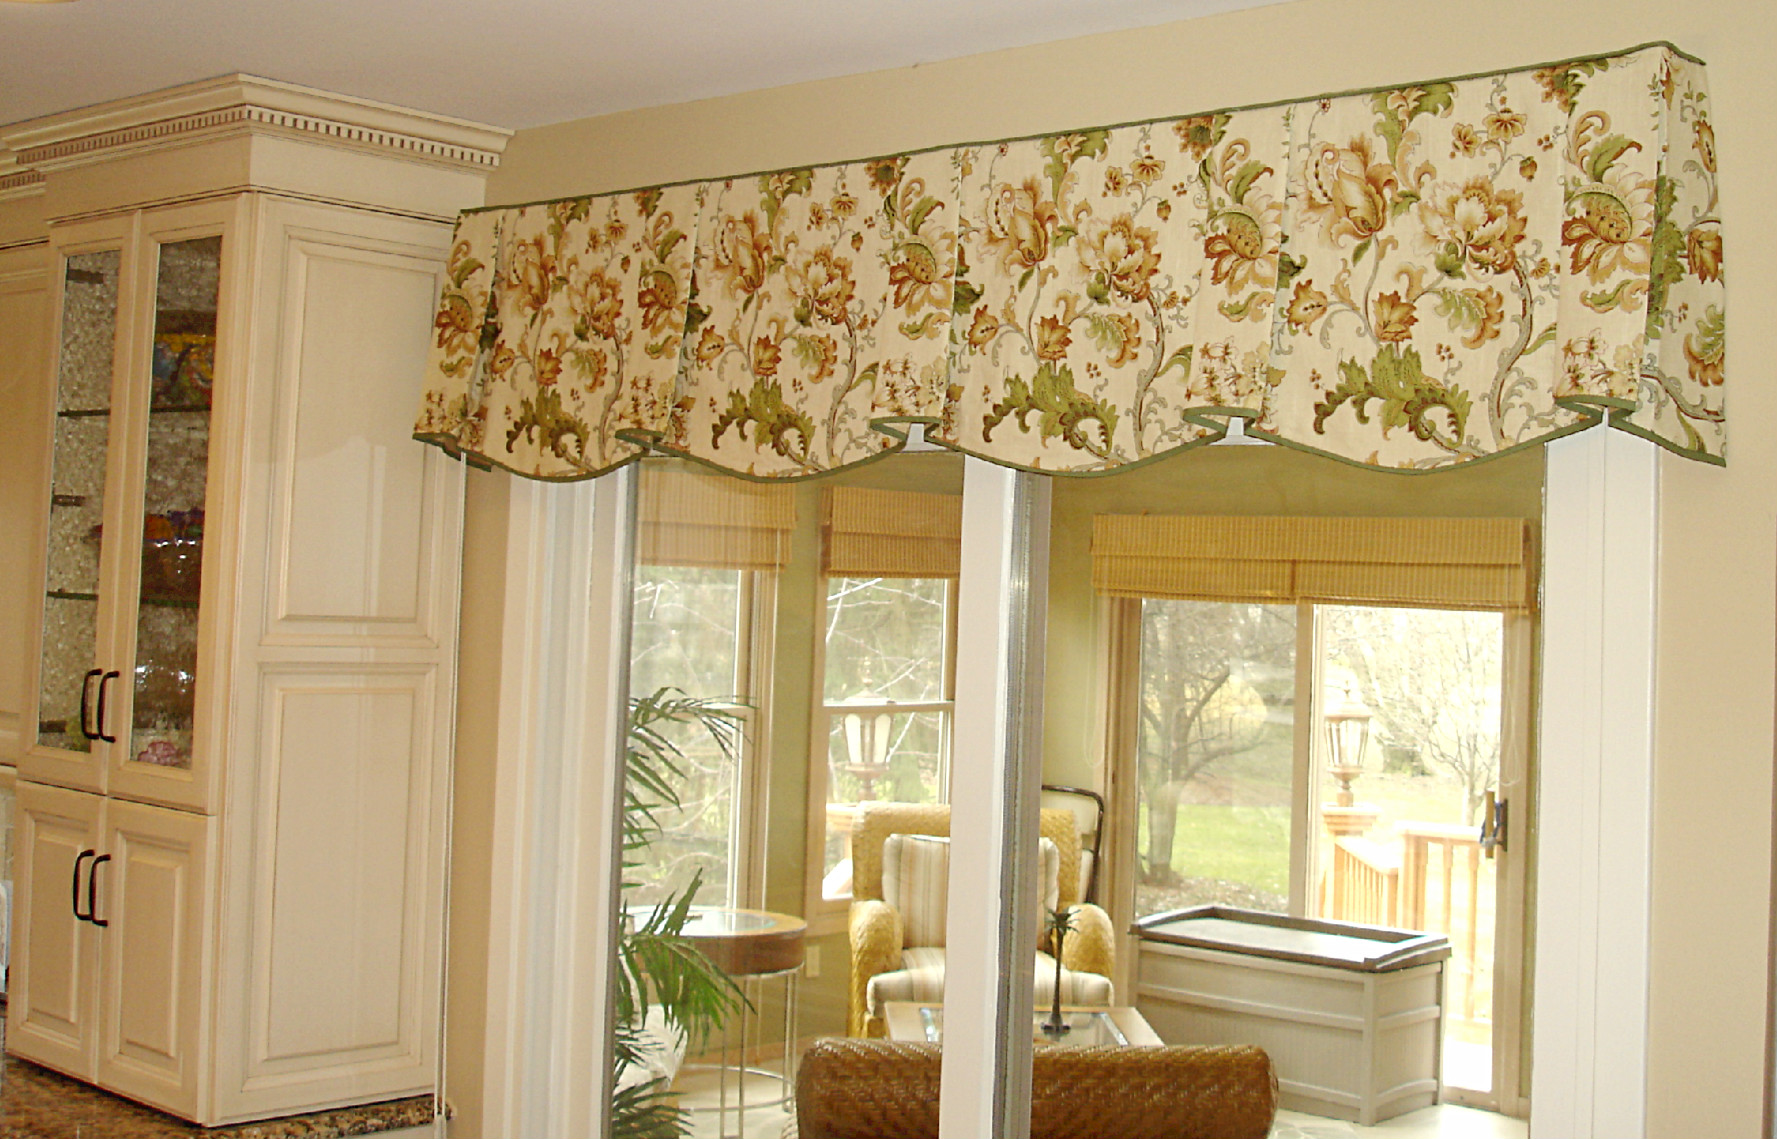 Curtains Ideas horizontal striped curtains : Corner kitchen window. » Susan's Designs